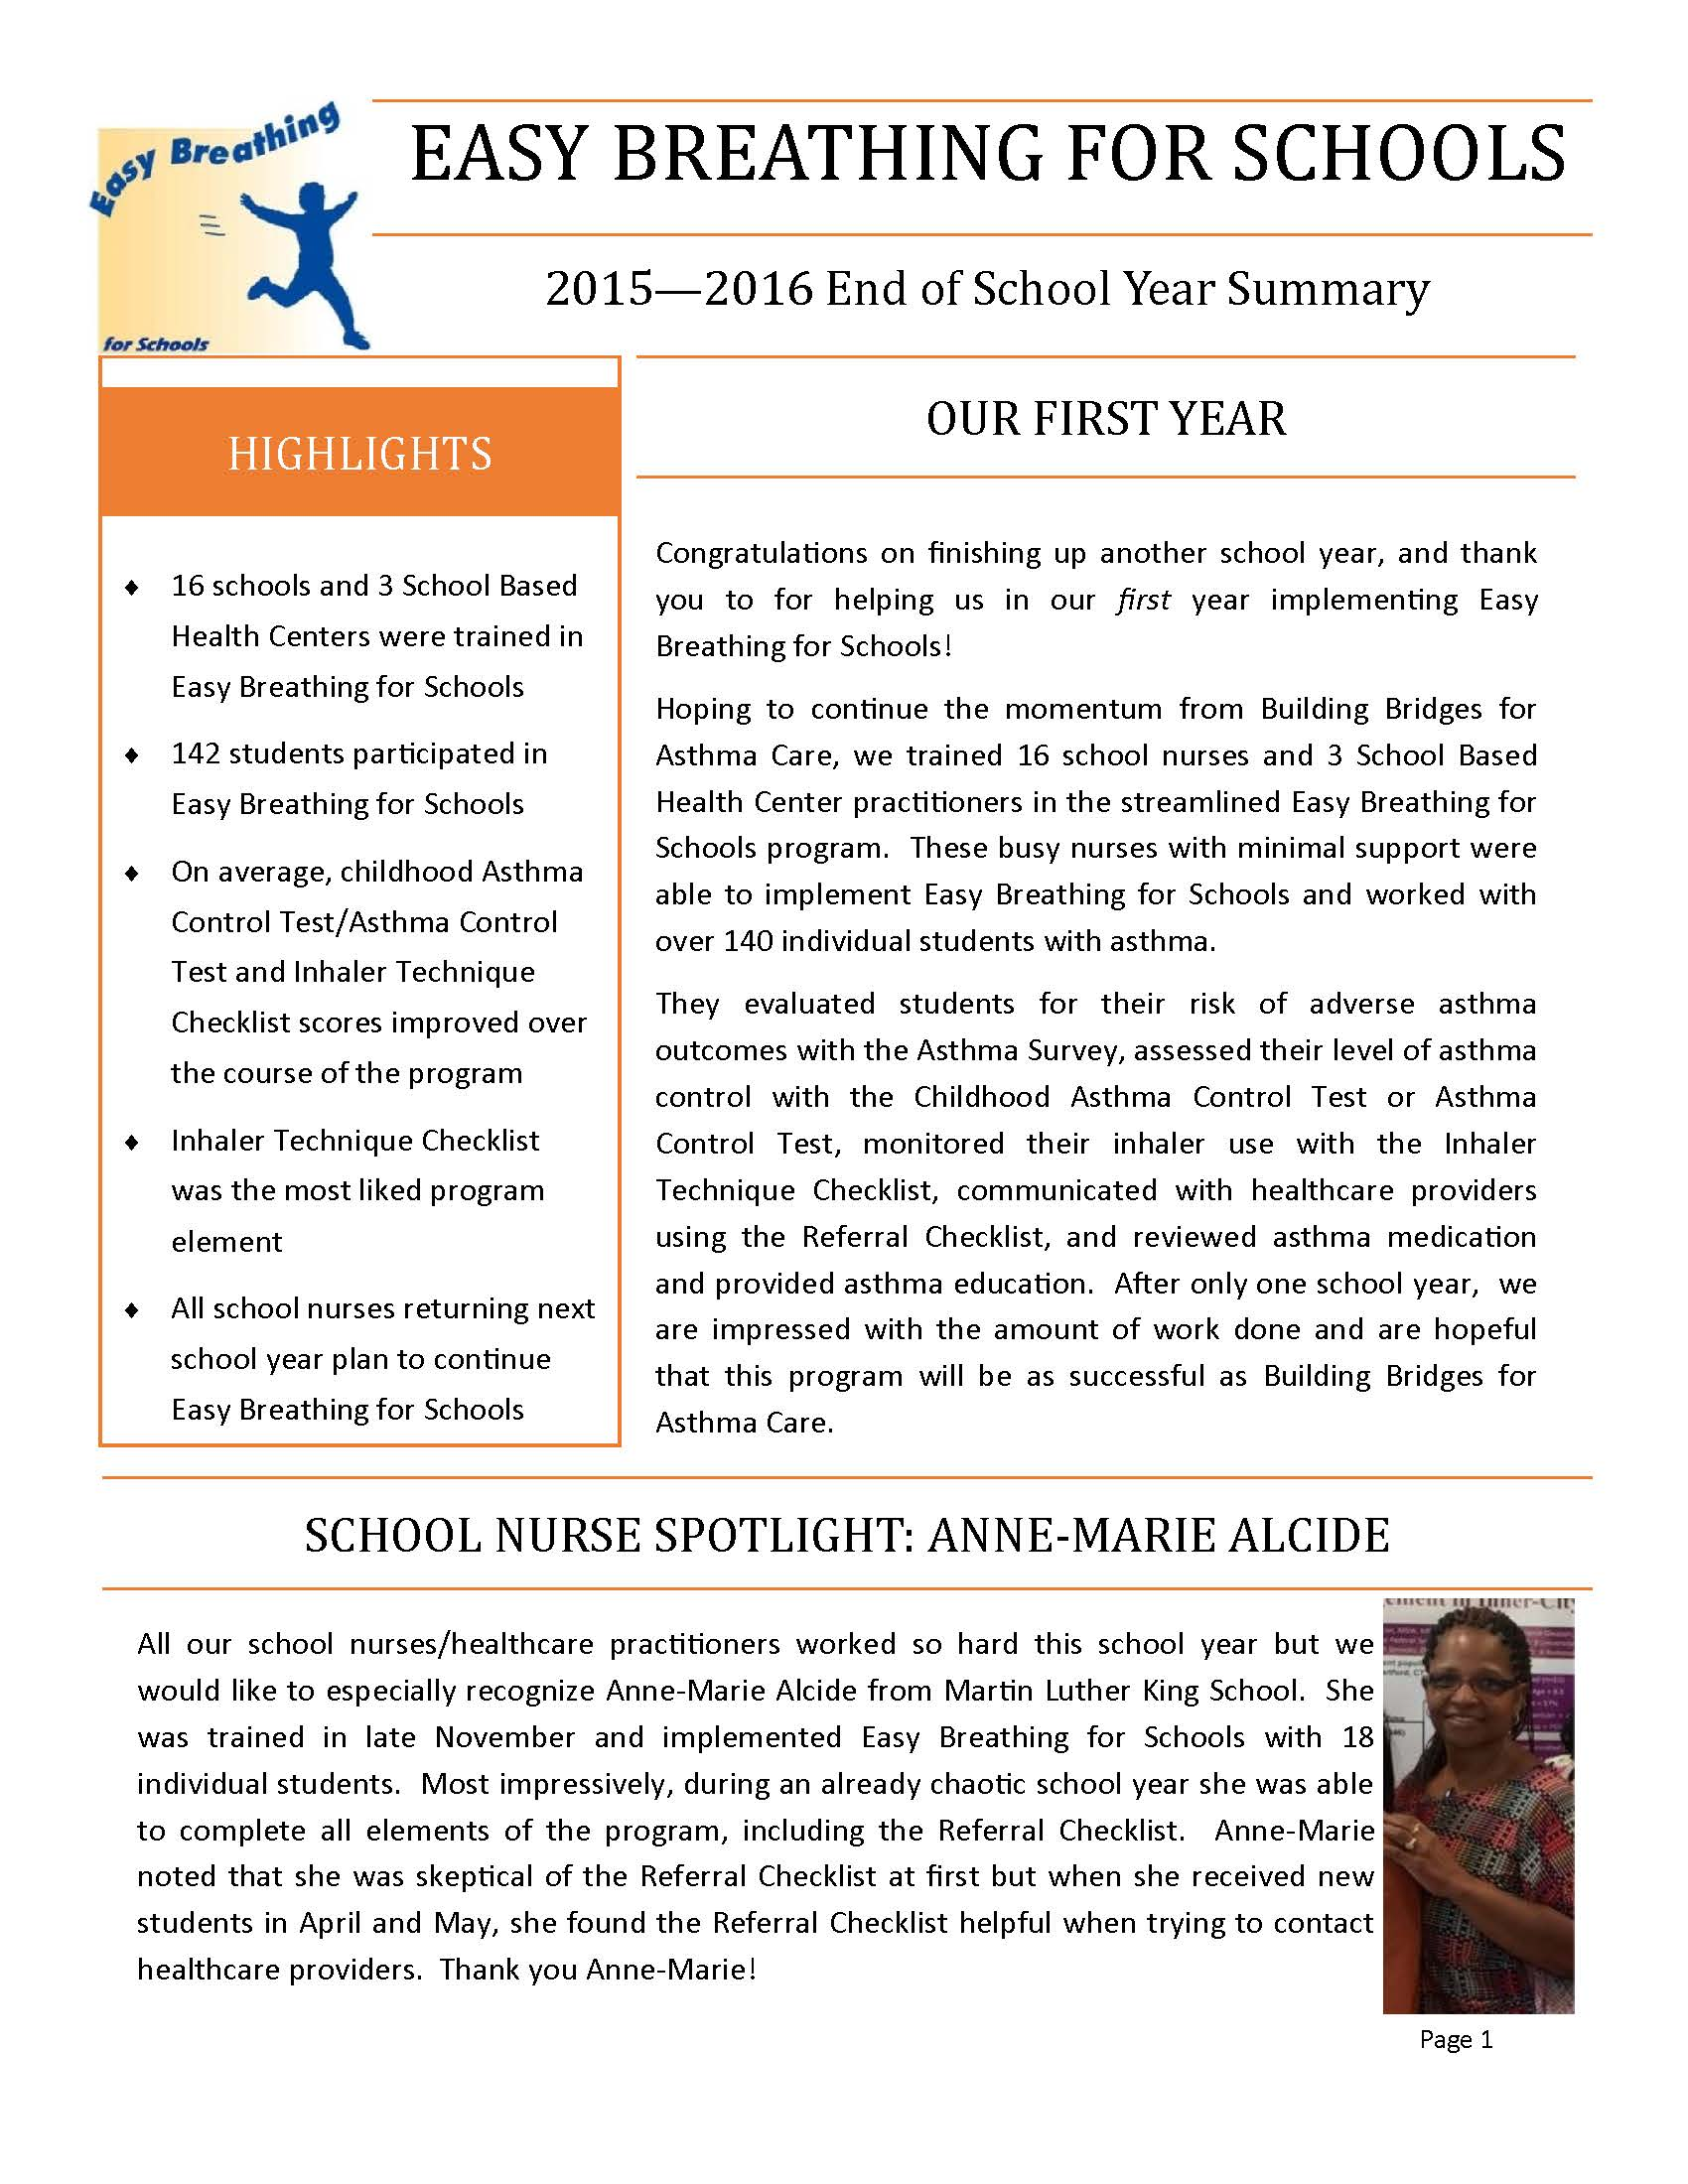 easy-breathing-end-of-year-newsletter_page_1